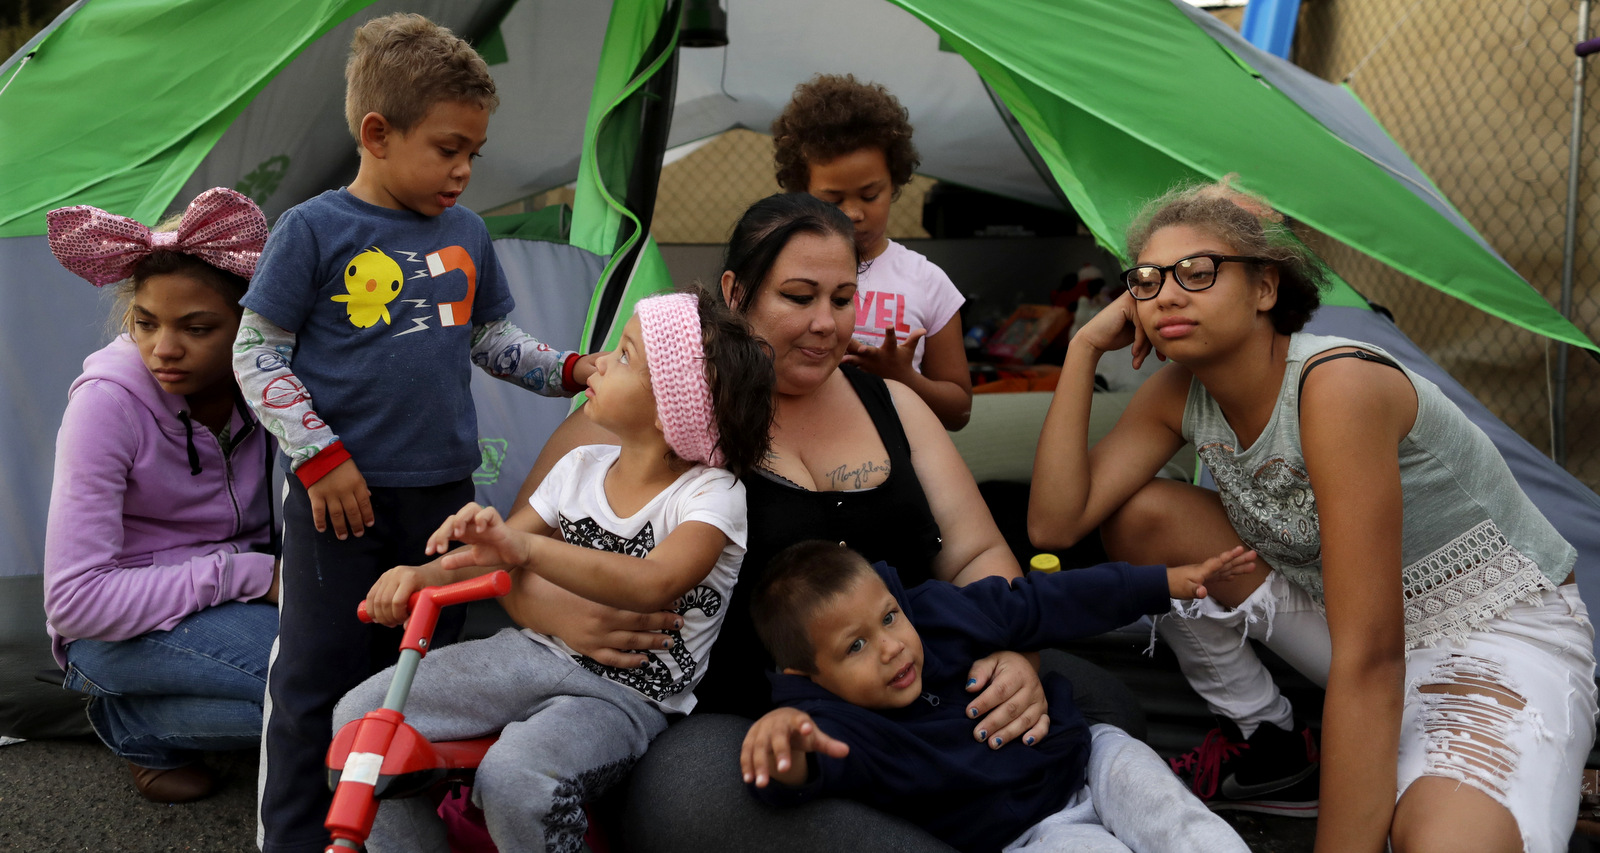 Christine Wade sits among her children in front of their donated tent in the city-sanctioned encampment on a parking lot in San Diego. They are, from left, Shawnni, 12, Roland, 4, Rayahna, 3, Jaymason, 2, Brooklyn, 8, and Shaccoya, 14. The Wade family is among several hundred people living in the city's first campground open for the homeless, set up to curb the worst Hepatitis A outbreak in the United States in decades. Gregory Bull | AP